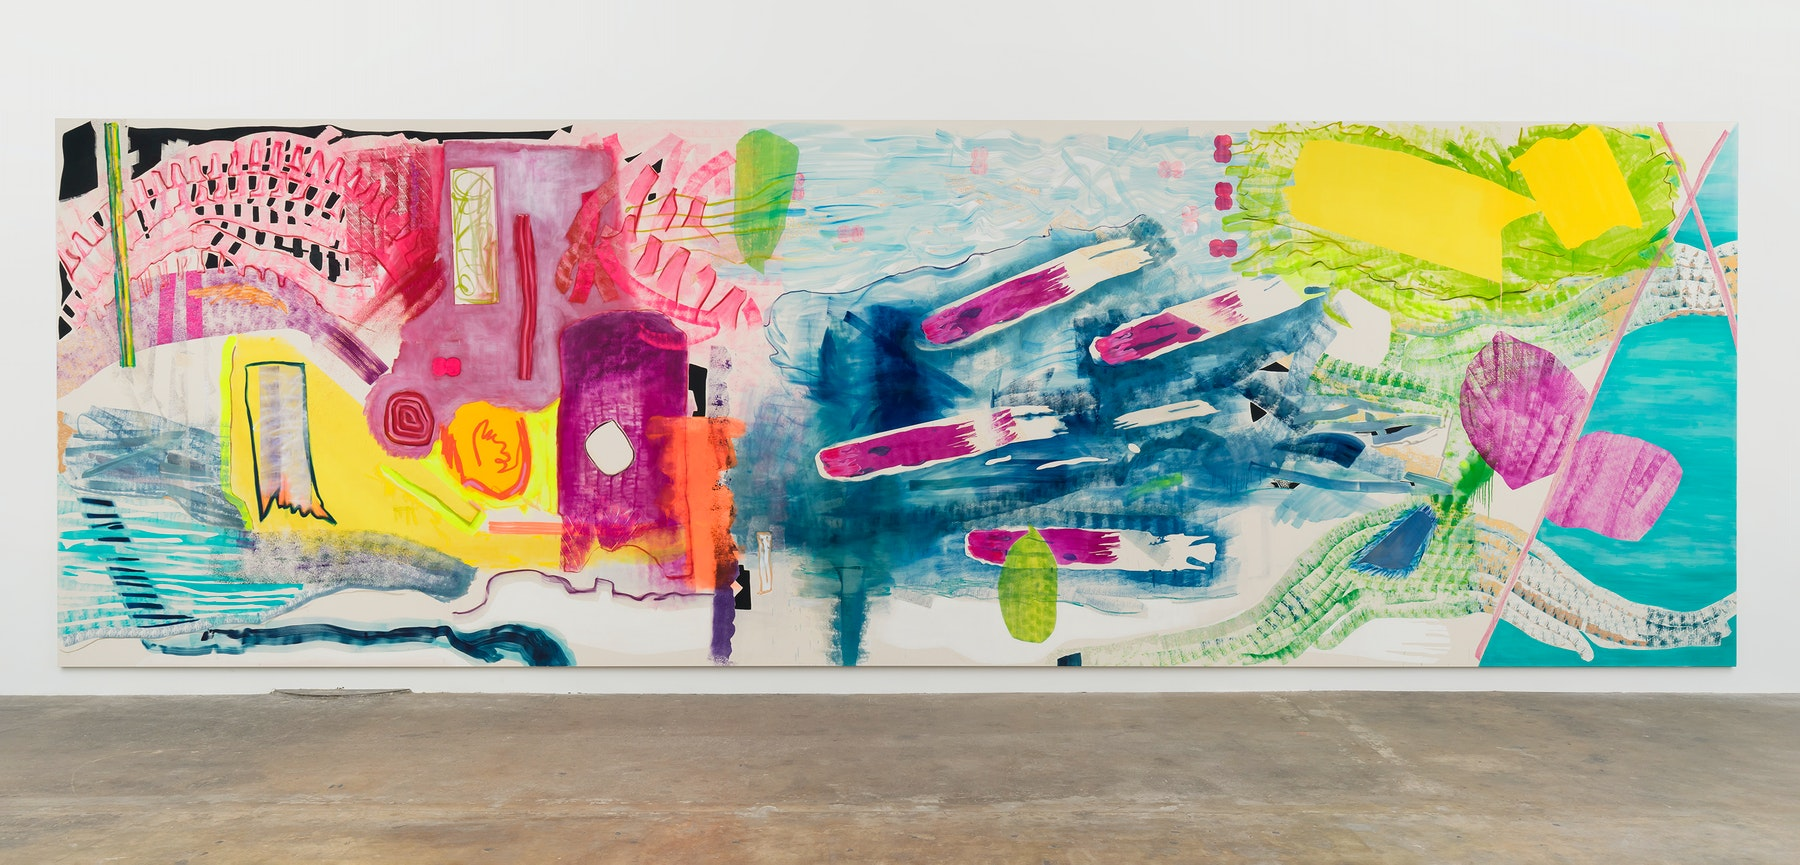 """Monique Van Genderen """"A Side,"""" 2021 Oil and pigment on canvas 11' ¹⁄₂"""" x 35' [HxW] (336.55 x 1066.8 cm) Inventory #VGE406 Courtesy of the artist and Vielmetter Los Angeles Photo Credit: Jeff McLane"""